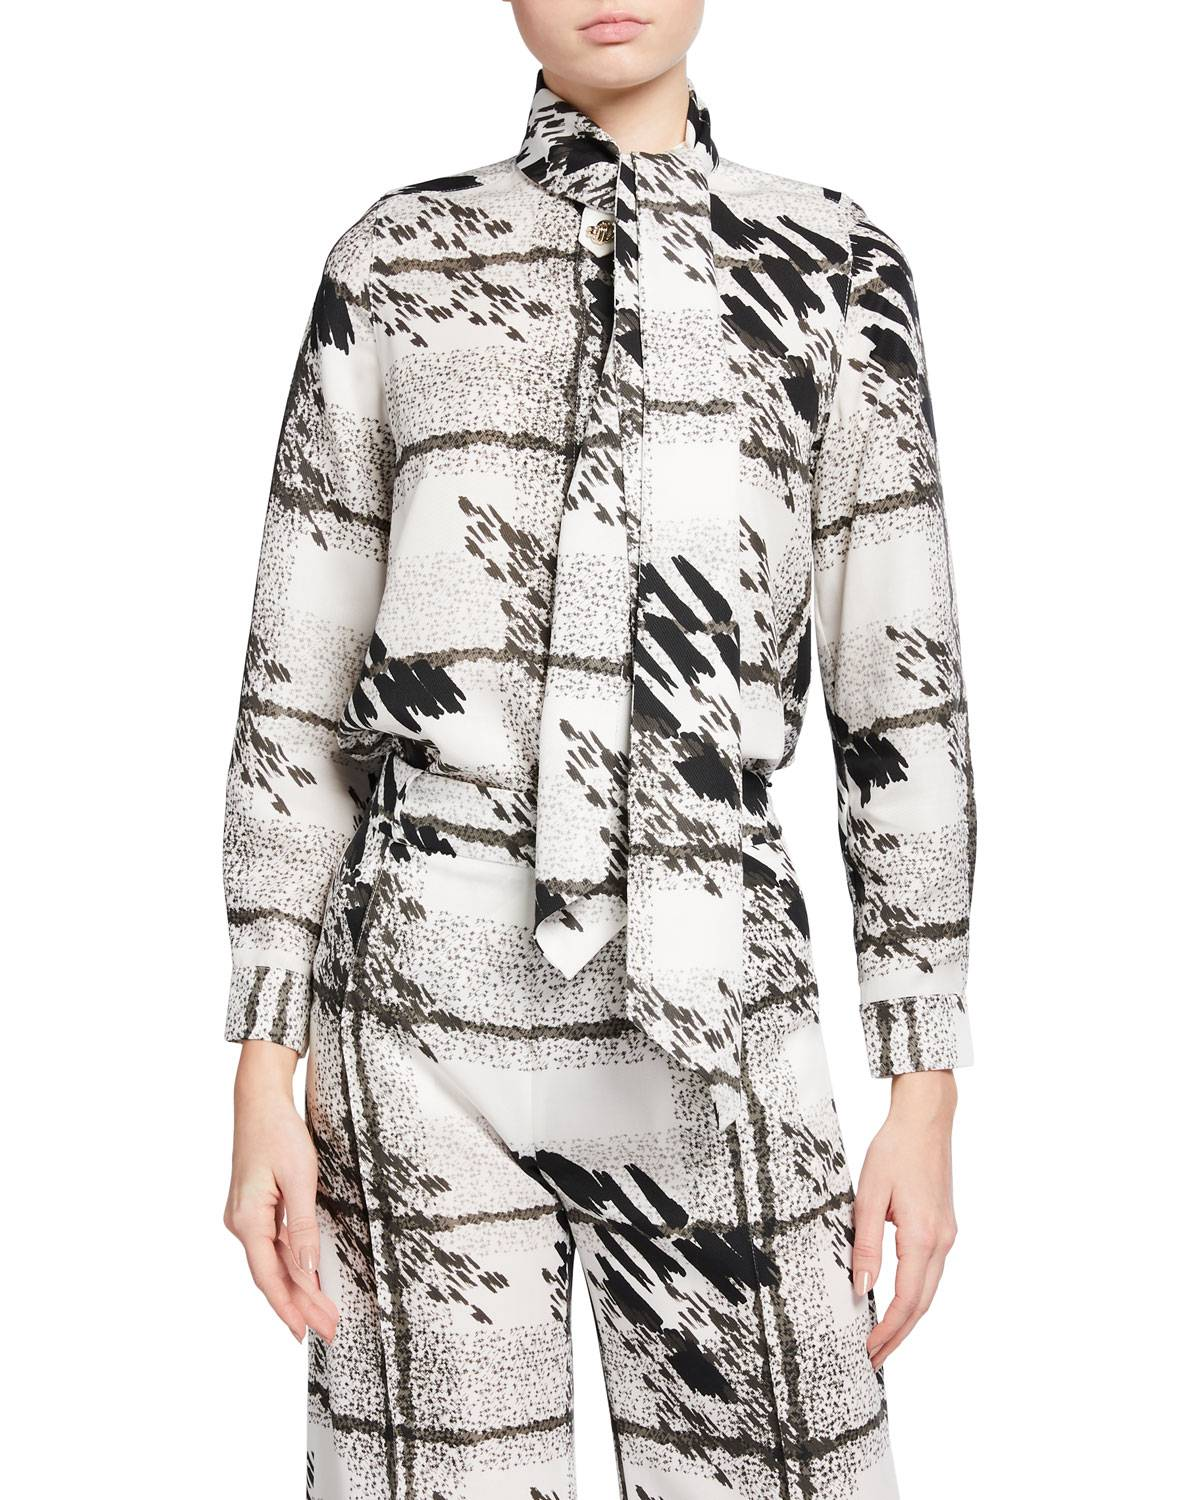 Pearl Printed Blouse with Neck Scarf - Size: 14 UK (10 US)